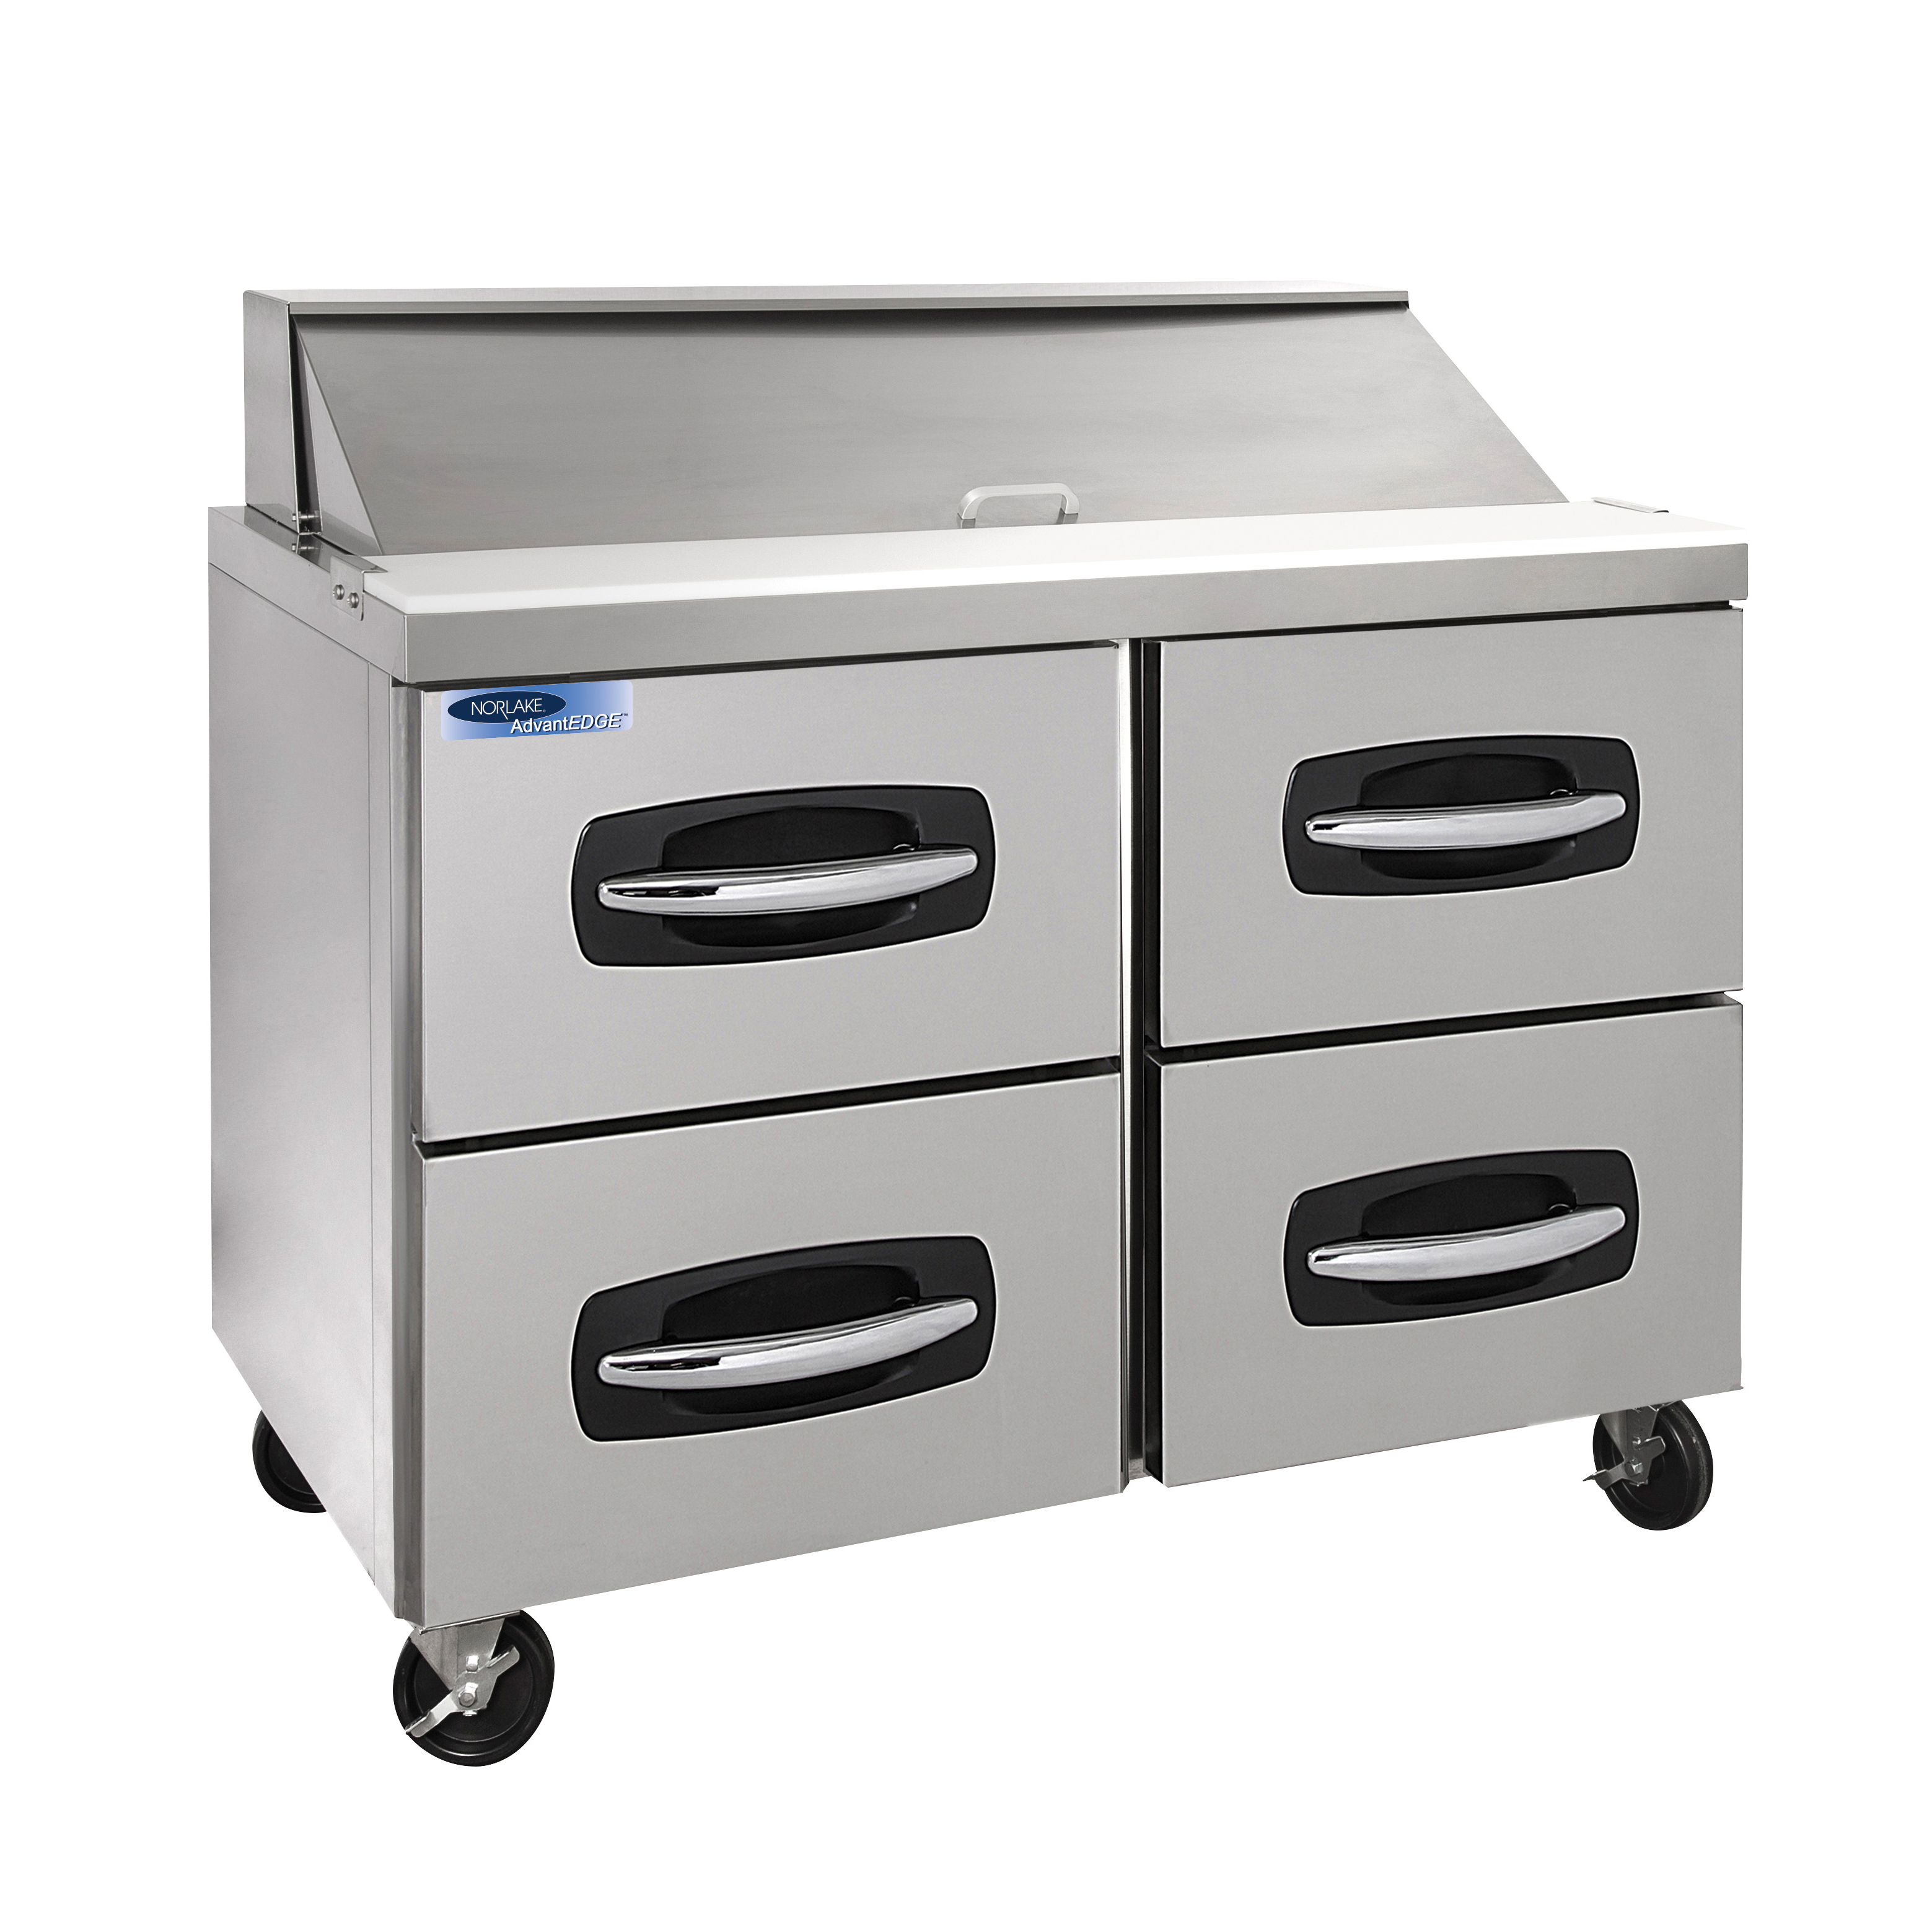 Nor-Lake NLSP48-12A-001B refrigerated counter, sandwich / salad unit